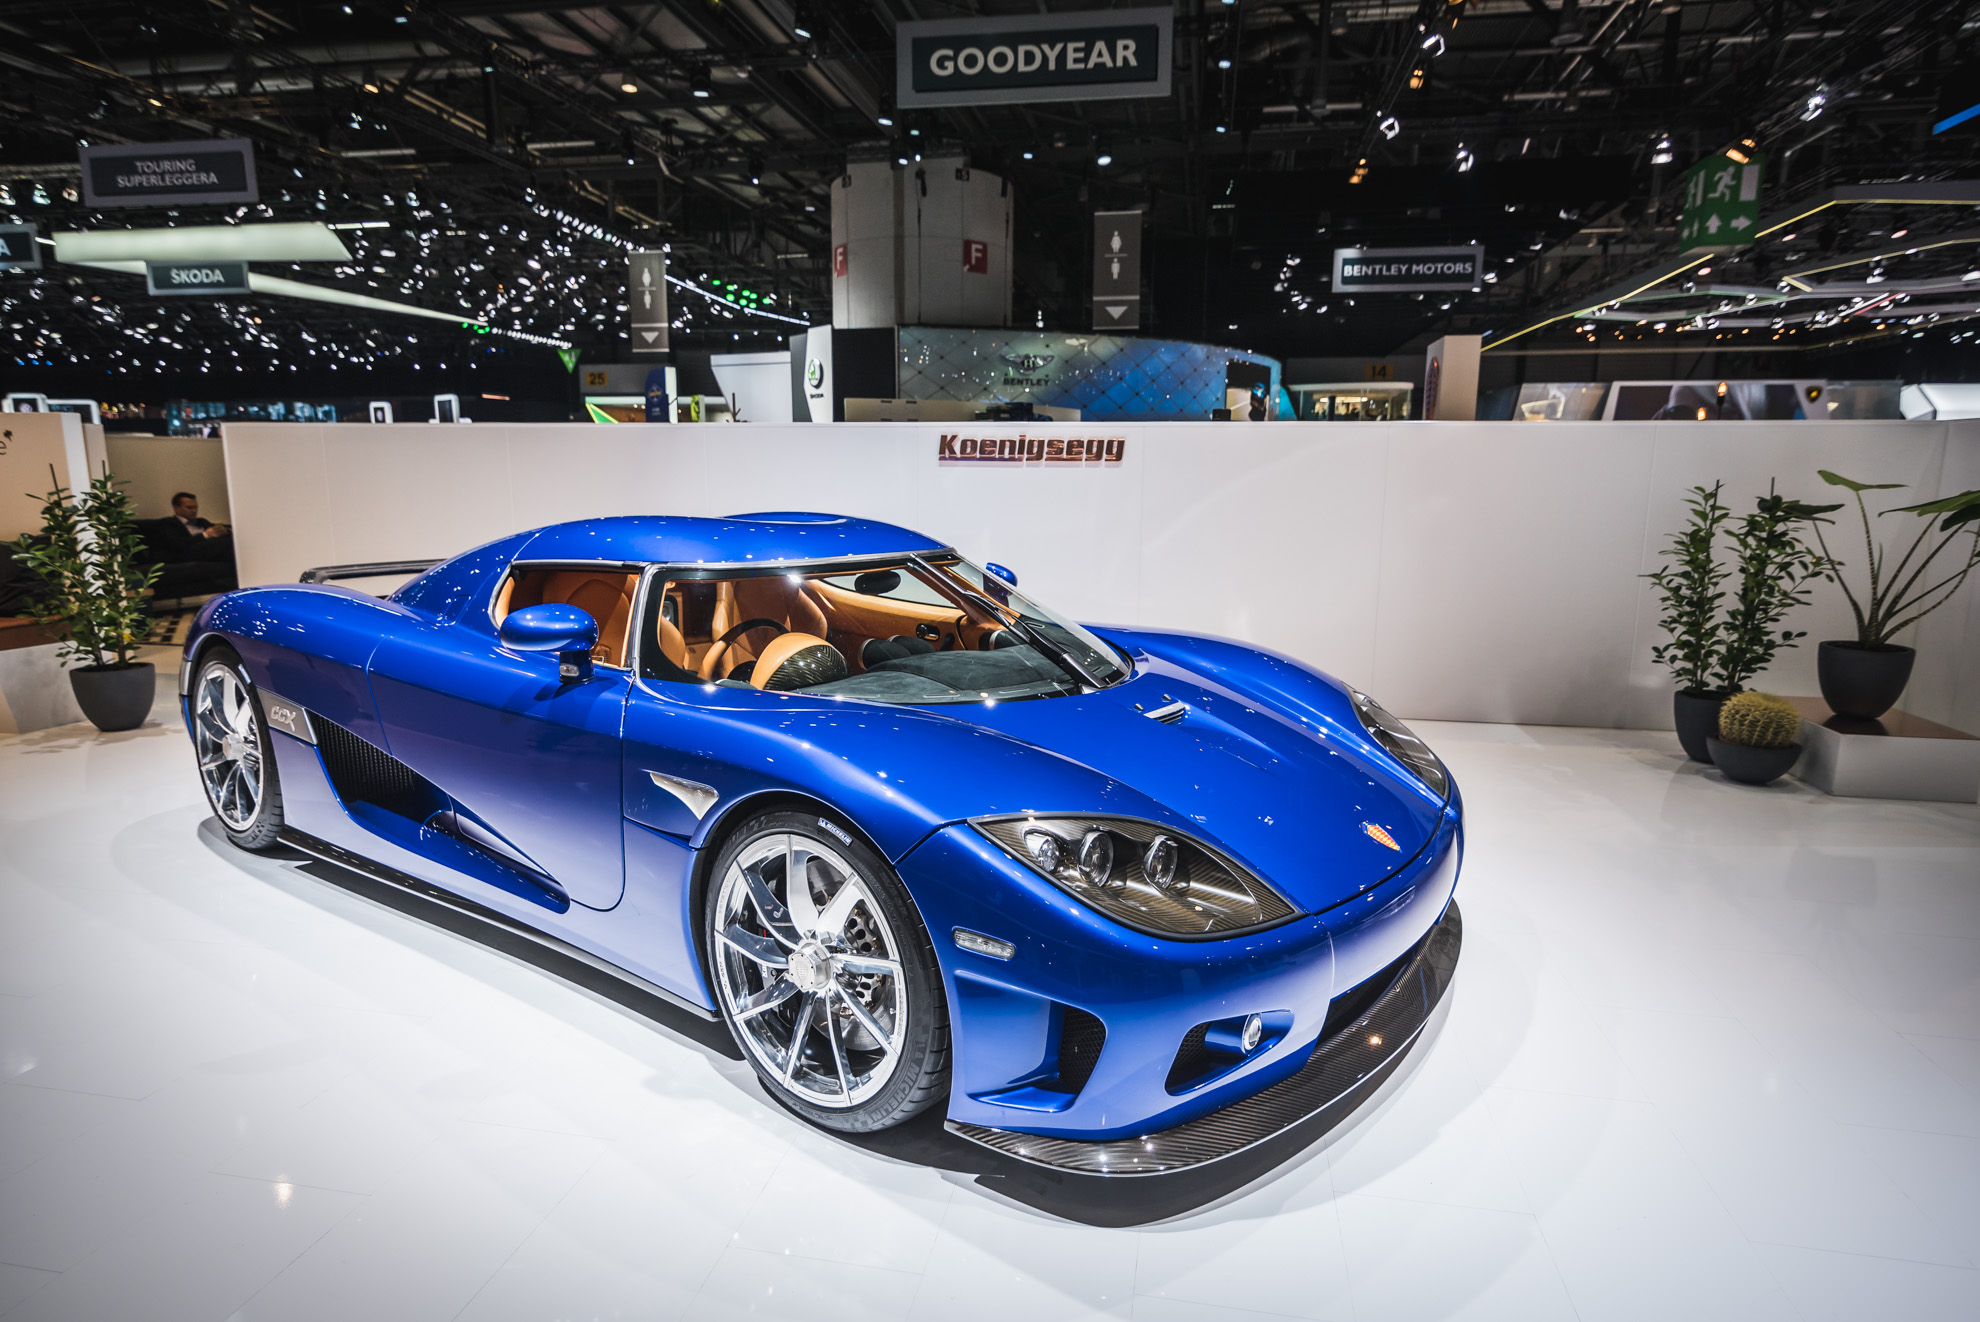 geneva-international-motor-show-igors-sinitsins-10